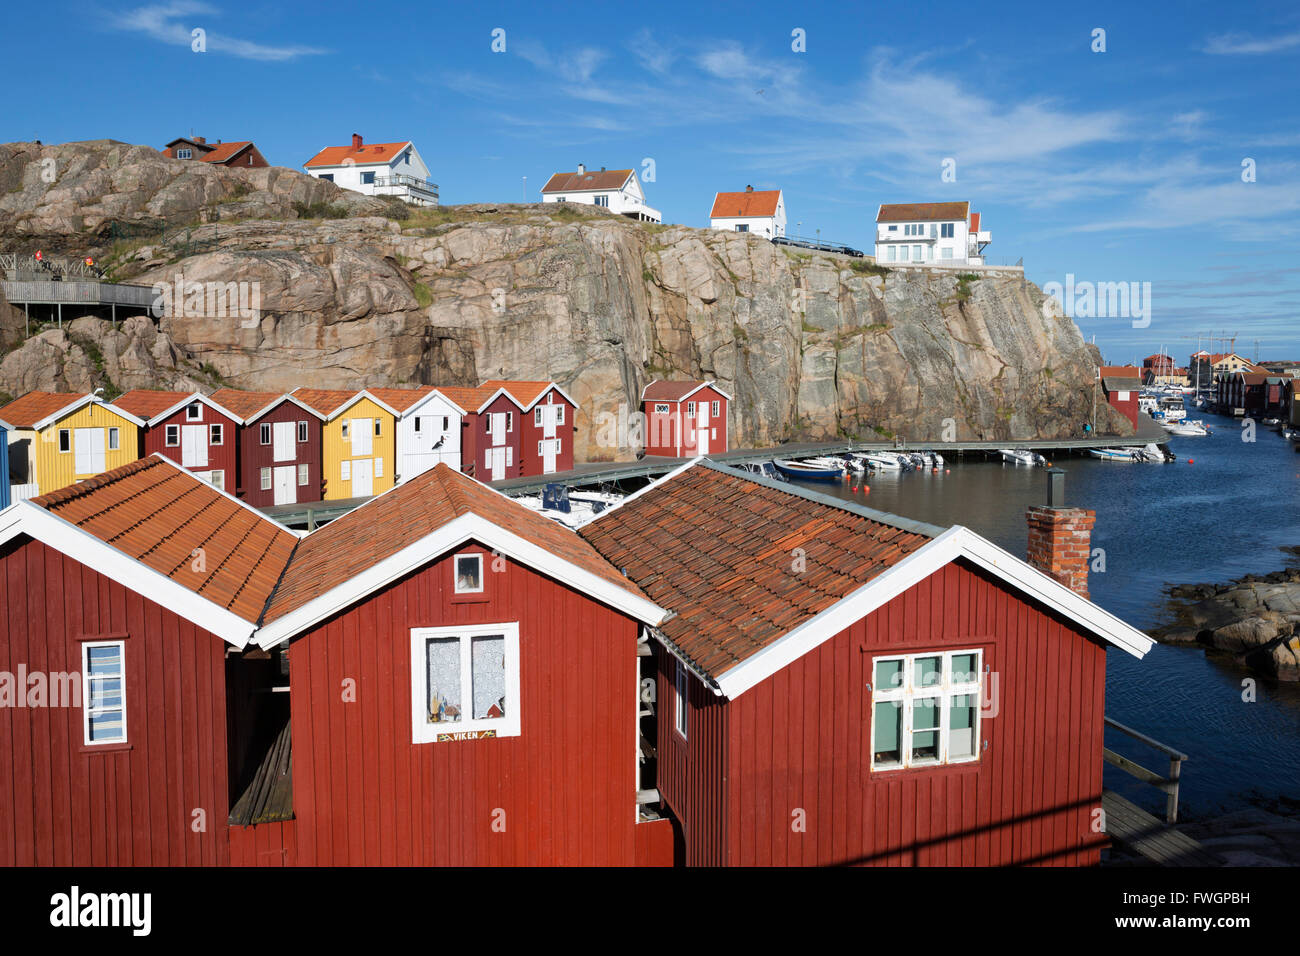 Traditional falu red fishermen's houses in harbour, Smogen, Bohuslan Coast, Southwest Sweden, Sweden, Scandinavia, Stock Photo